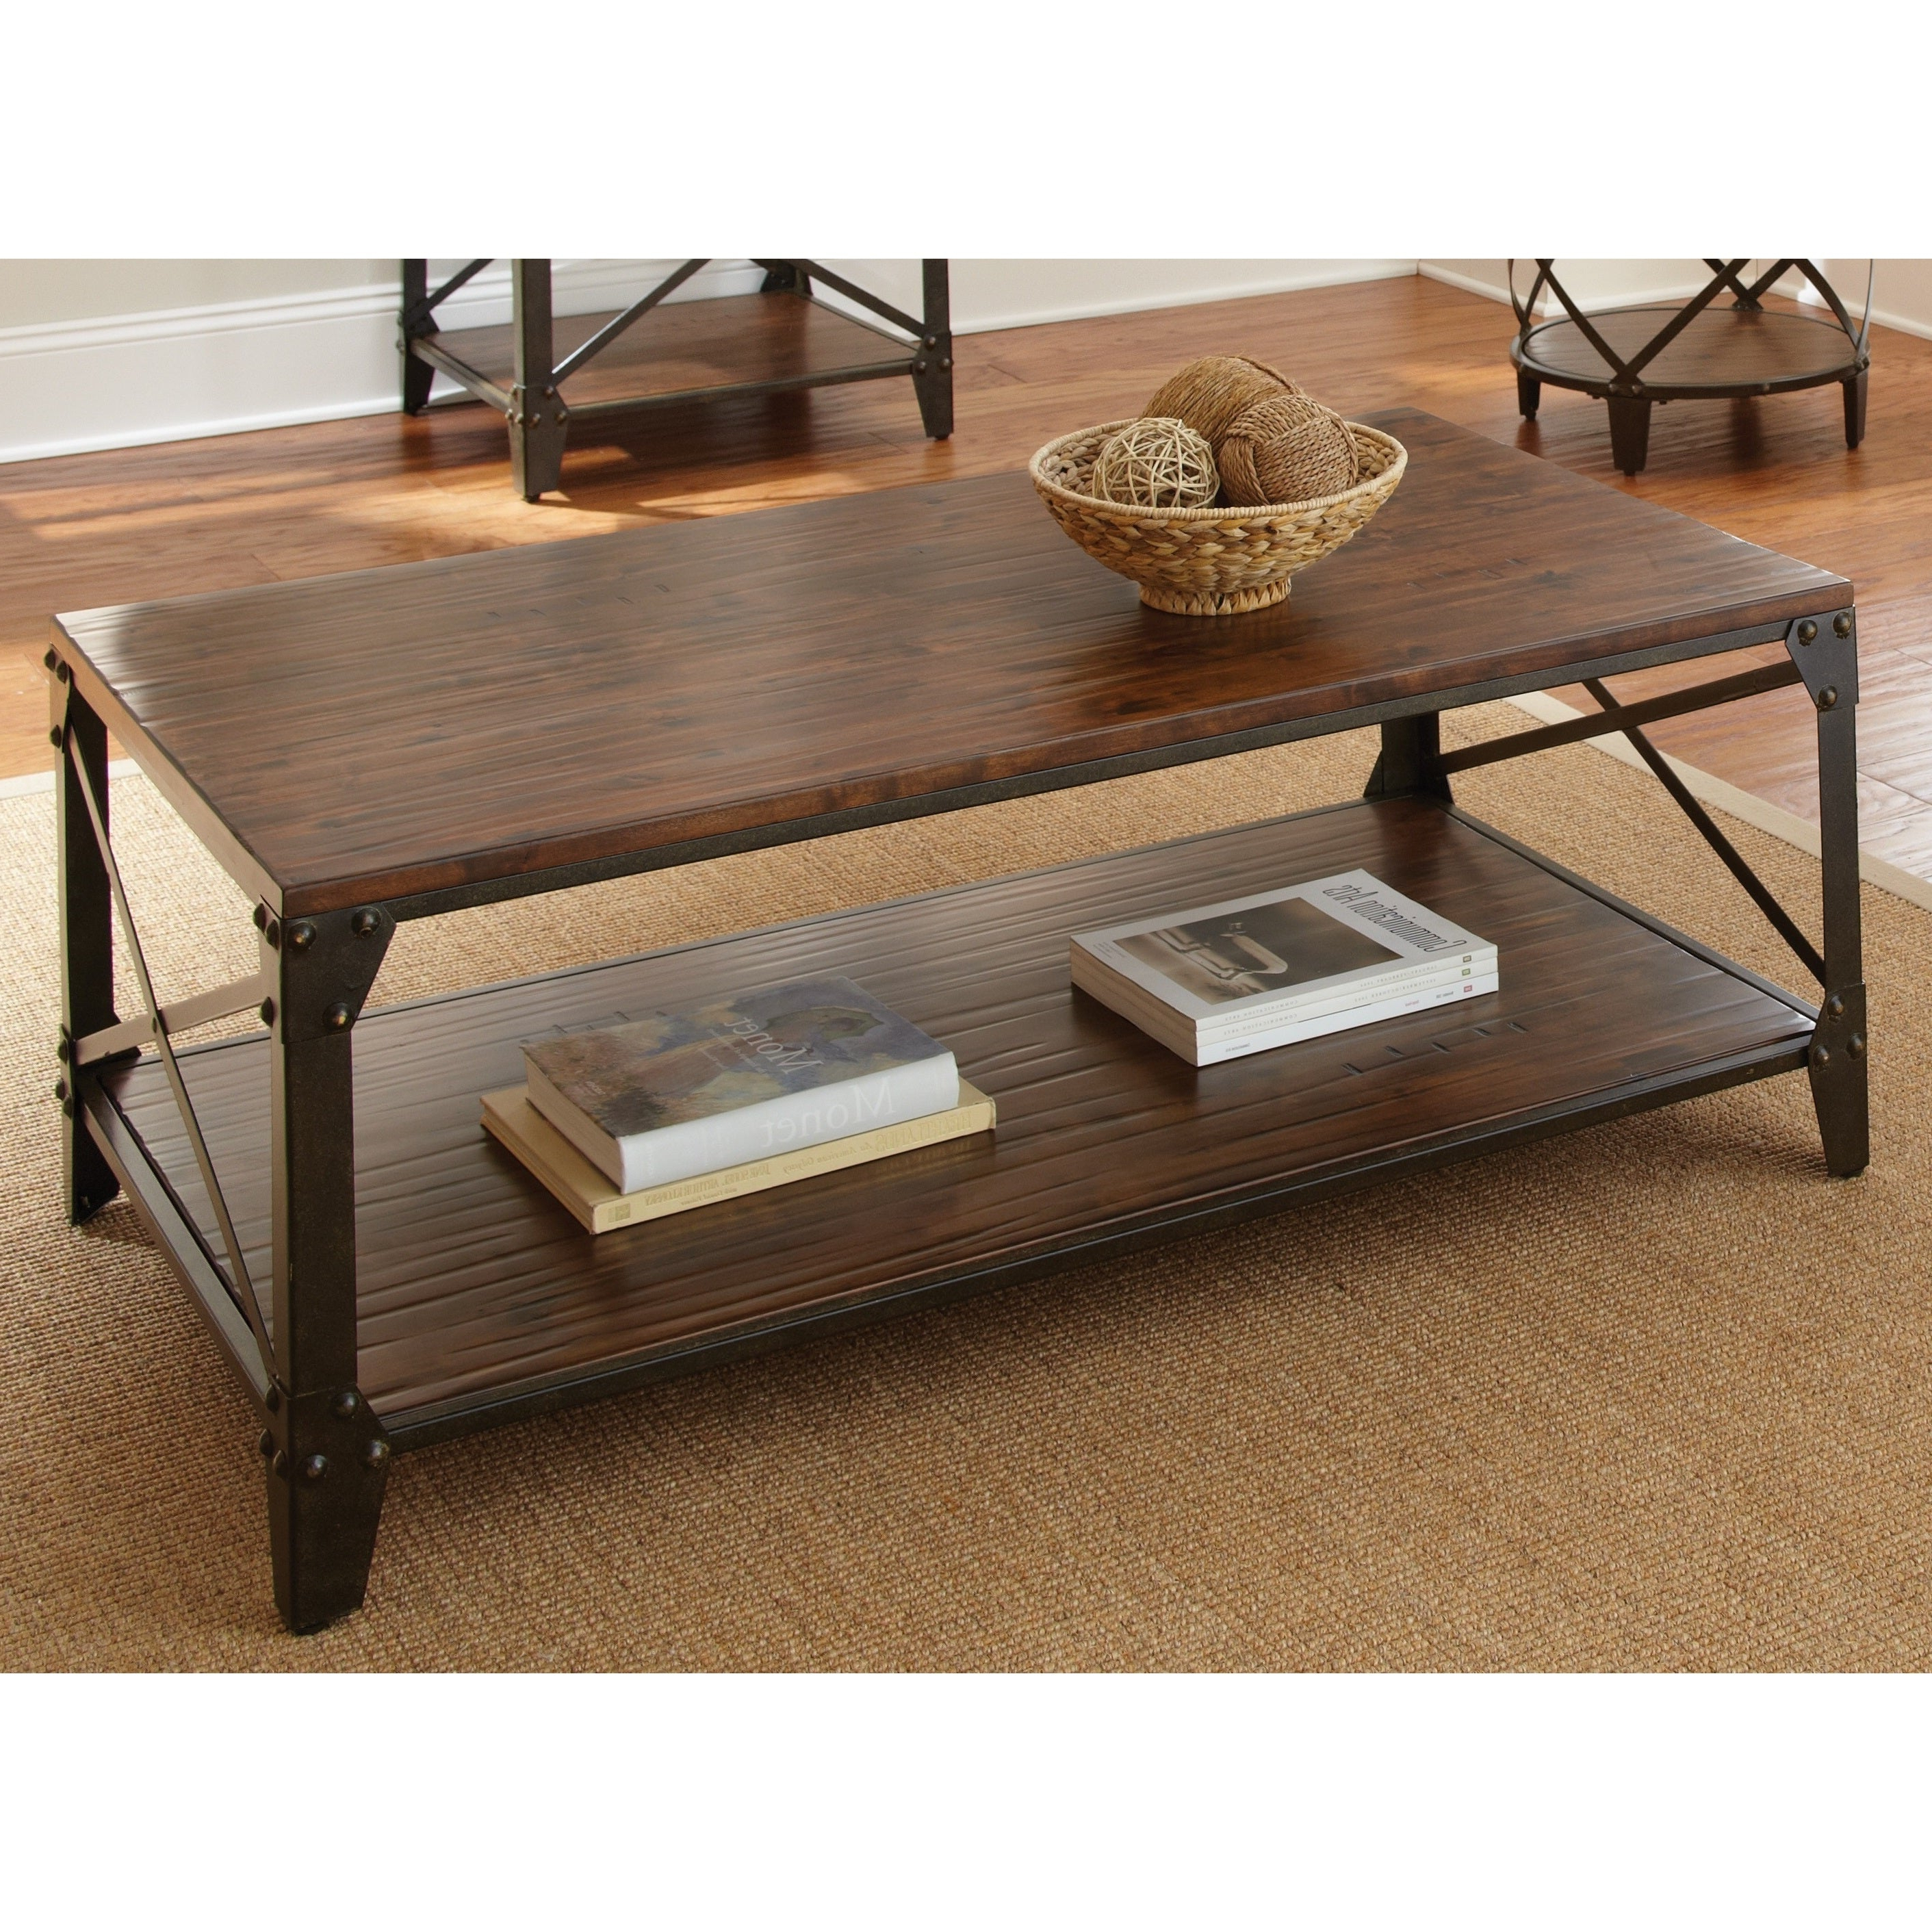 Shop Carbon Loft Fischer Brown Solid Birch And Iron Rustic Throughout Most Popular Carbon Loft Fischer Brown Solid Birch And Iron Rustic Coffee Tables (View 18 of 20)